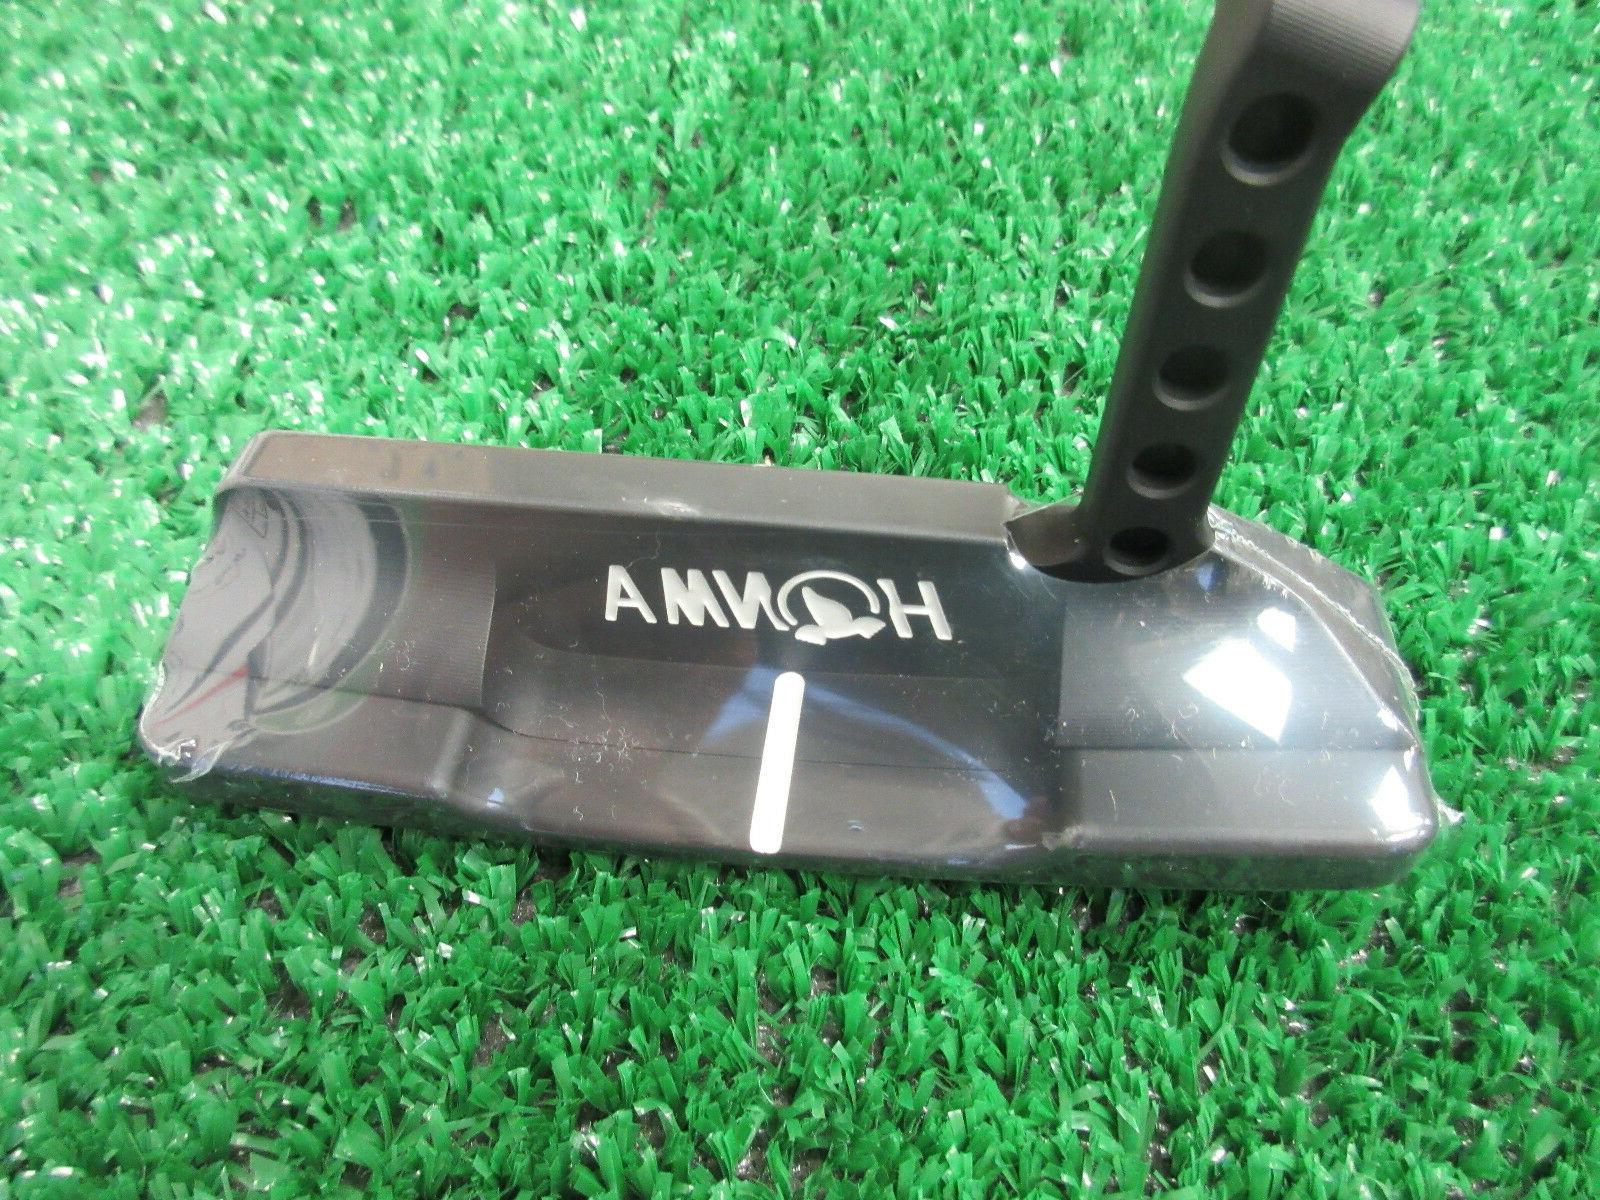 NEW!! PUTTER TW. 34 COVER!